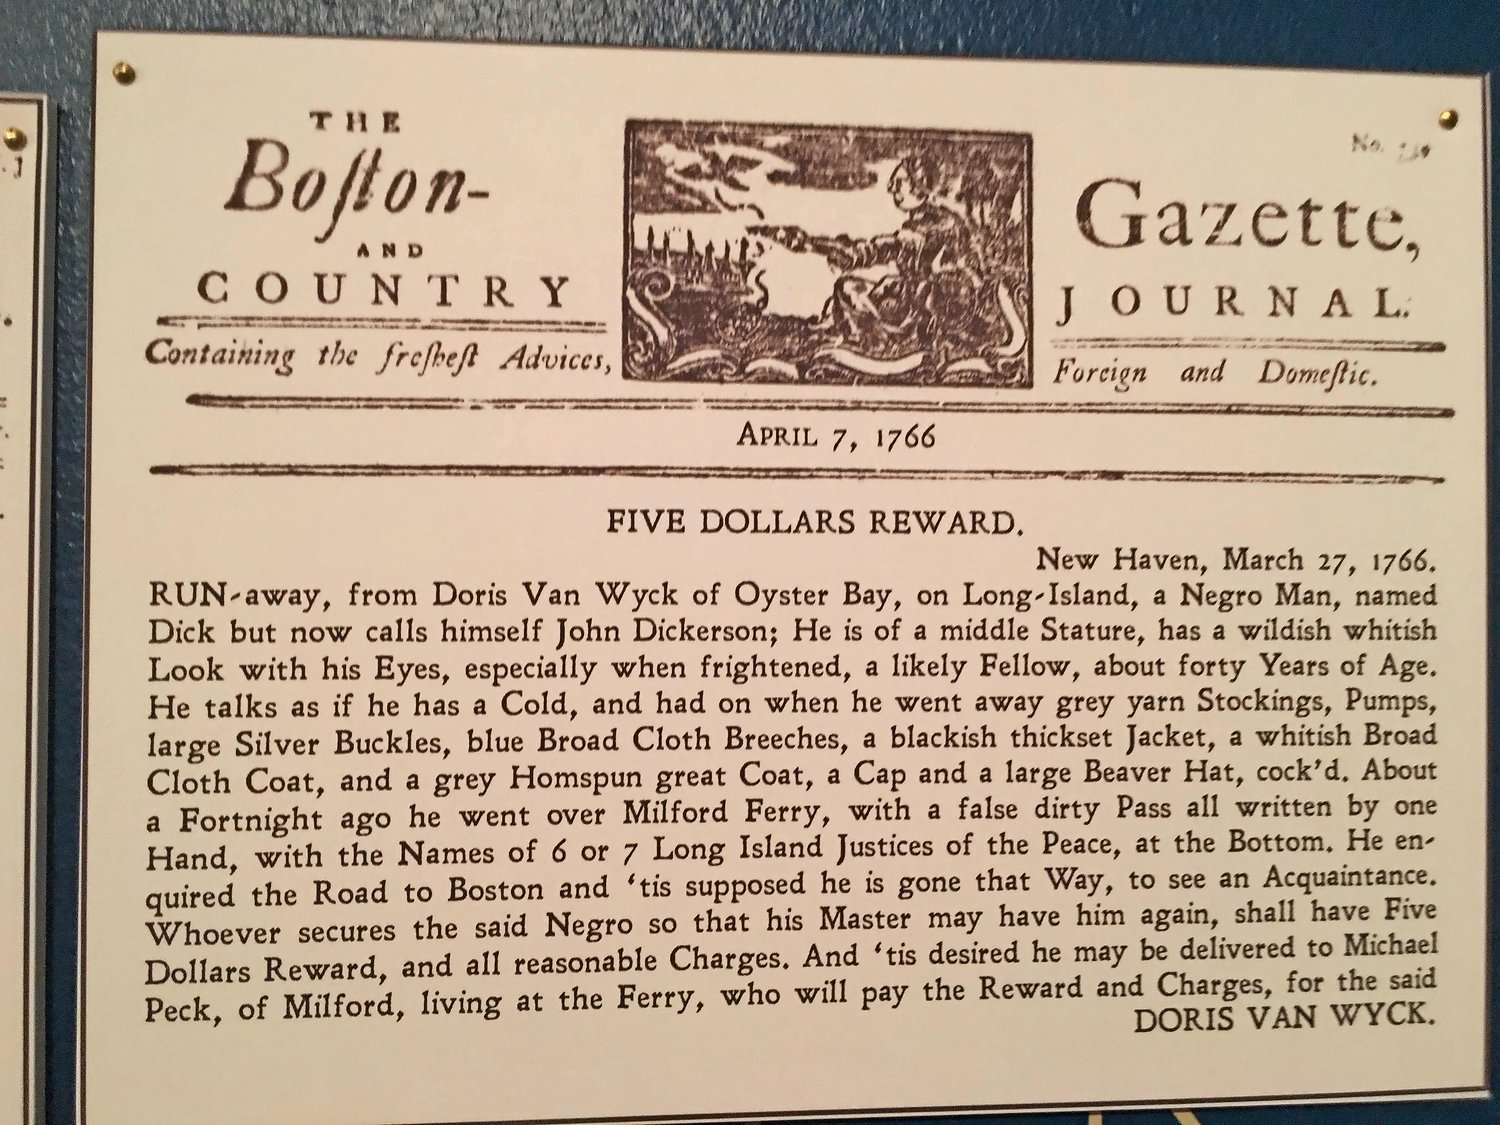 An advertisement about a runaway slave from Oyster Bay that offered a $5 reward for his return.